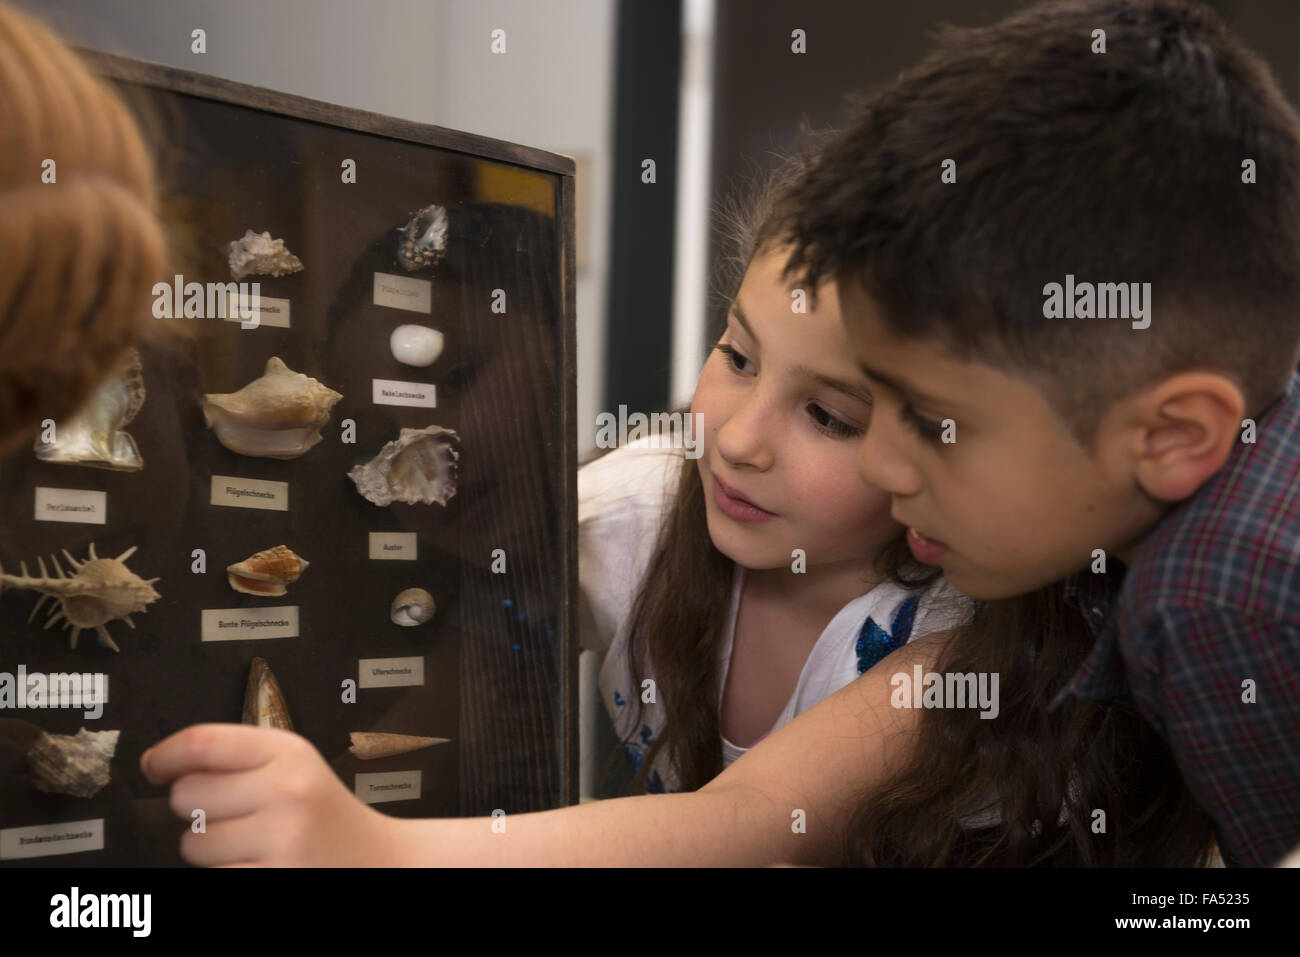 Students studying about seashells from display cabinet,  Fürstenfeldbruck, Bavaria, Germany - Stock Image